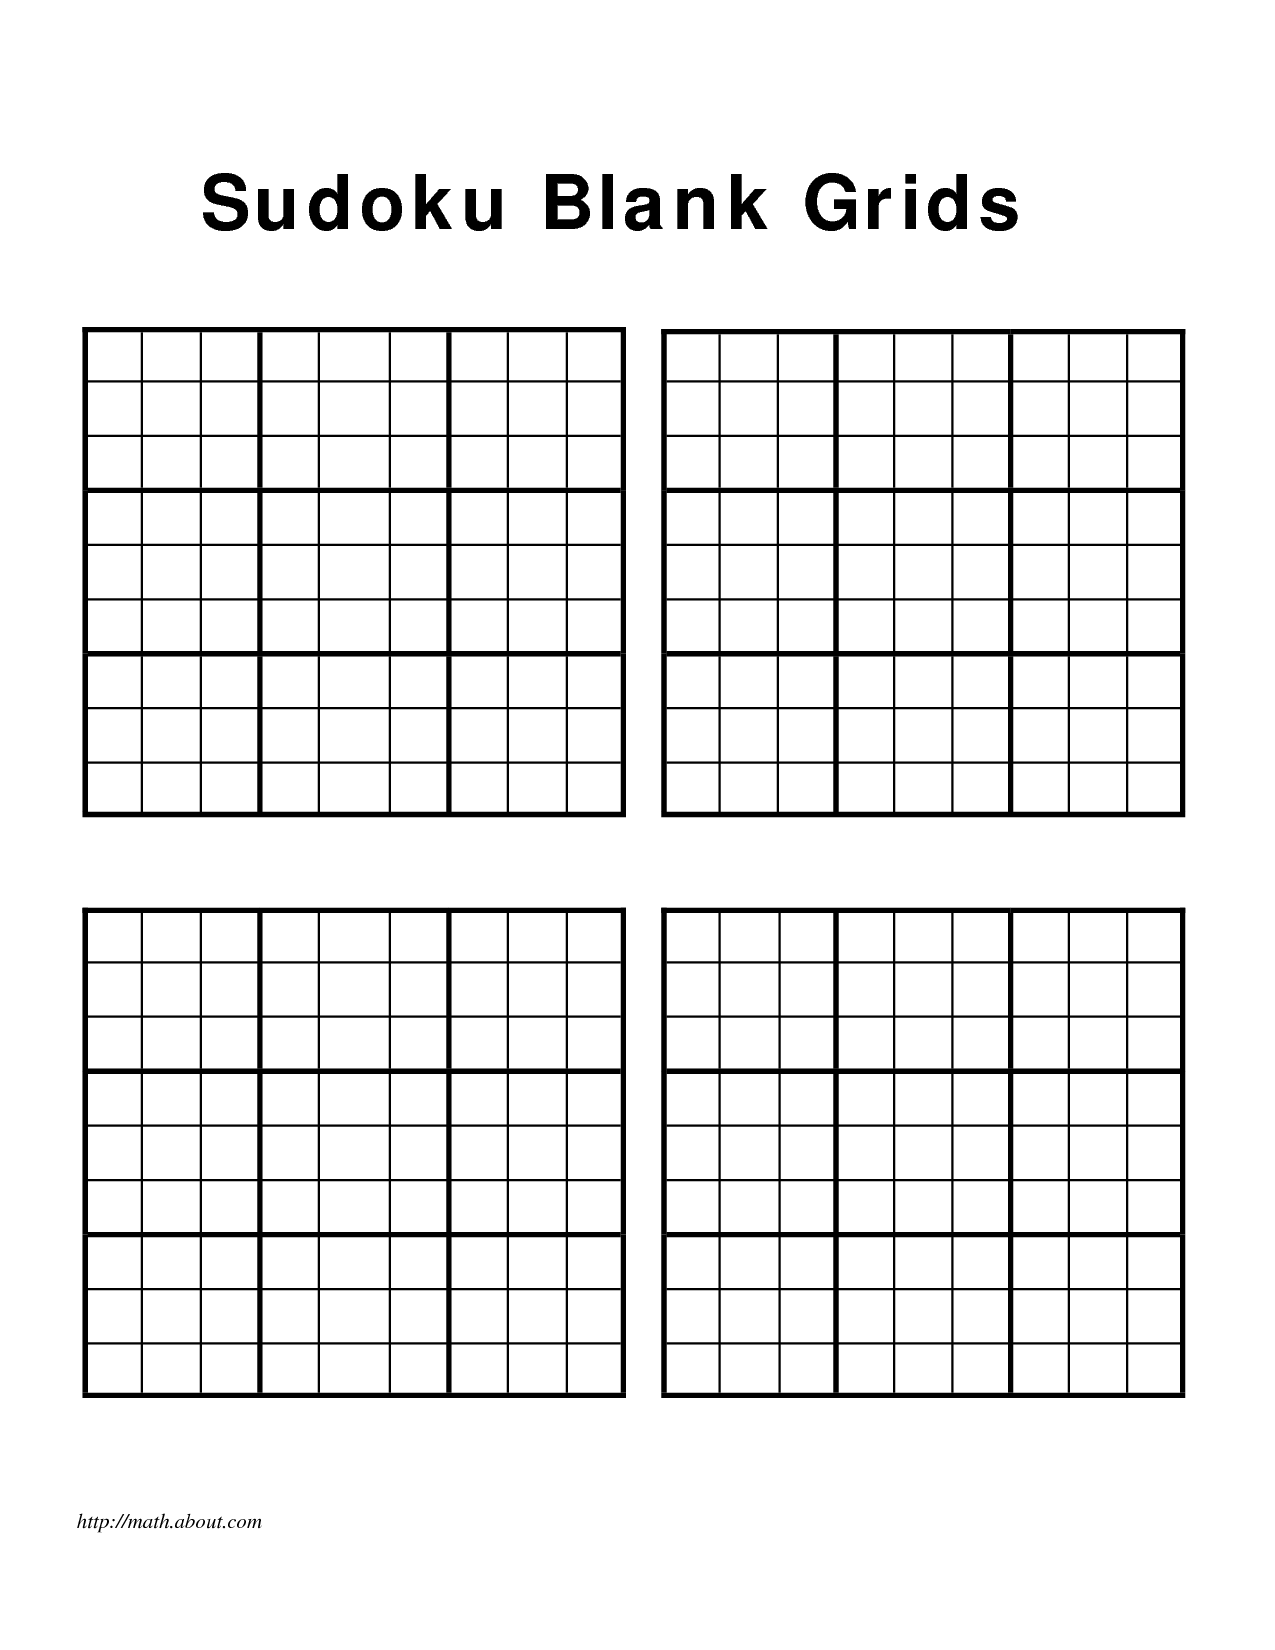 5 Best Images of Printable Blank Sudoku Worksheets - Blank Sudoku ...